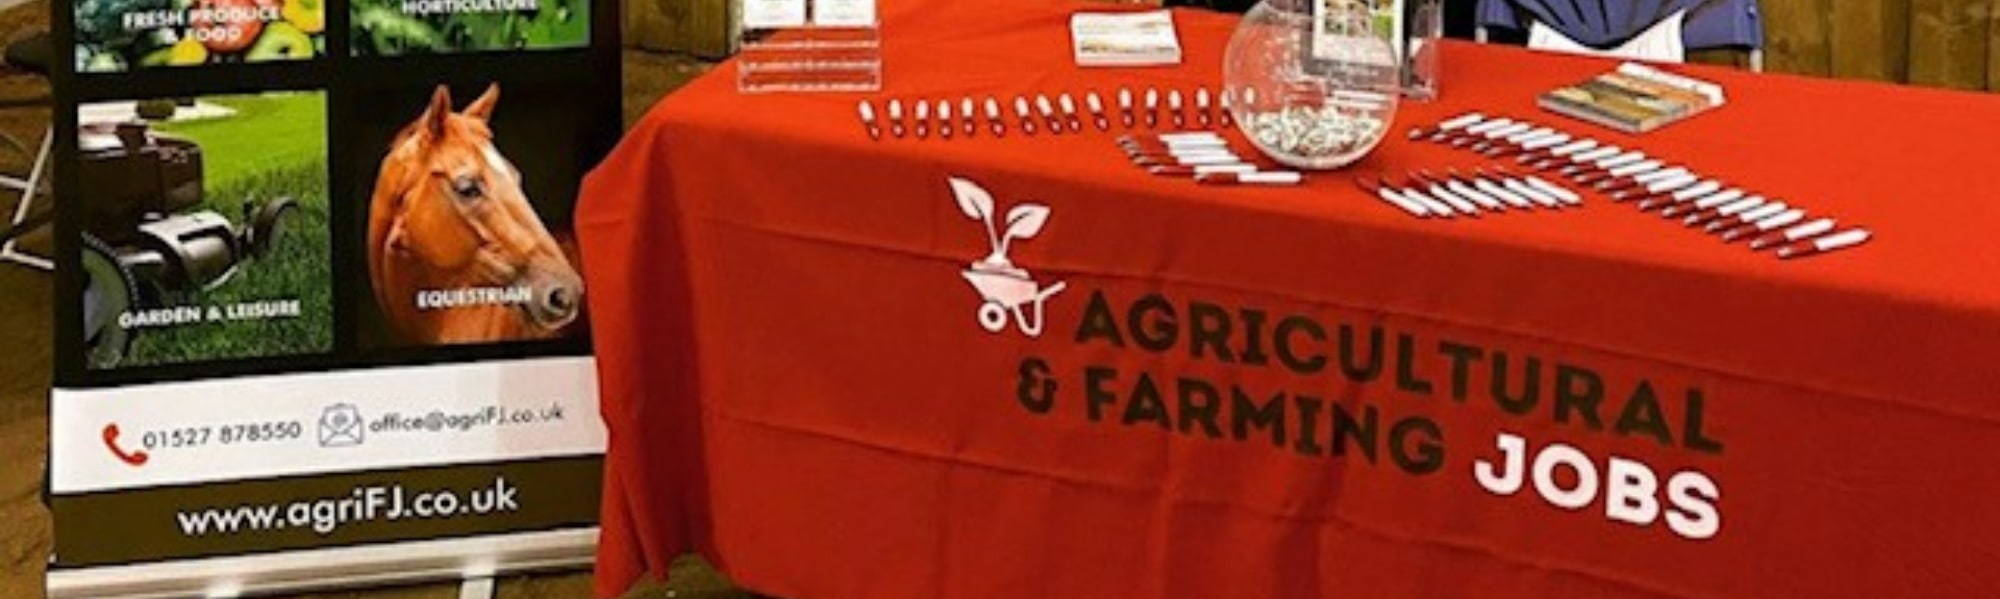 Agri FJ Trusted Partners